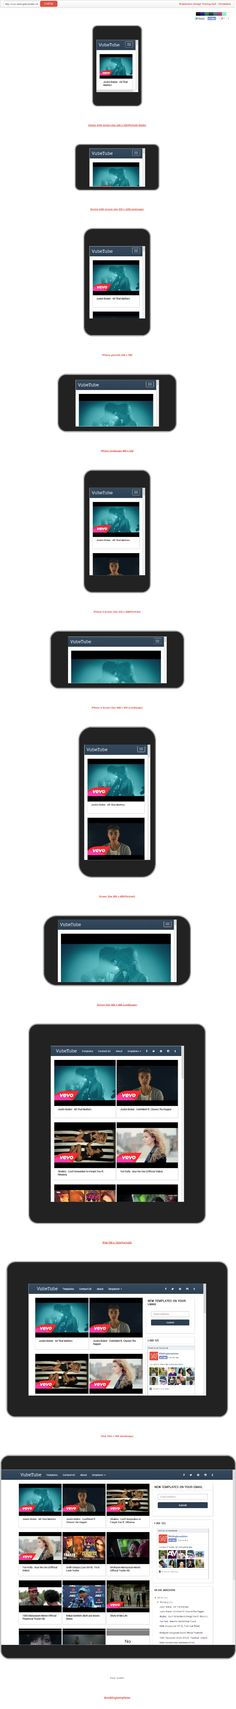 http://www.weblogtemplates.net/2014/02/vubetube-responsive-video-blogger.html Responsive design preview of VubeTube Responsive Video Blogger Template